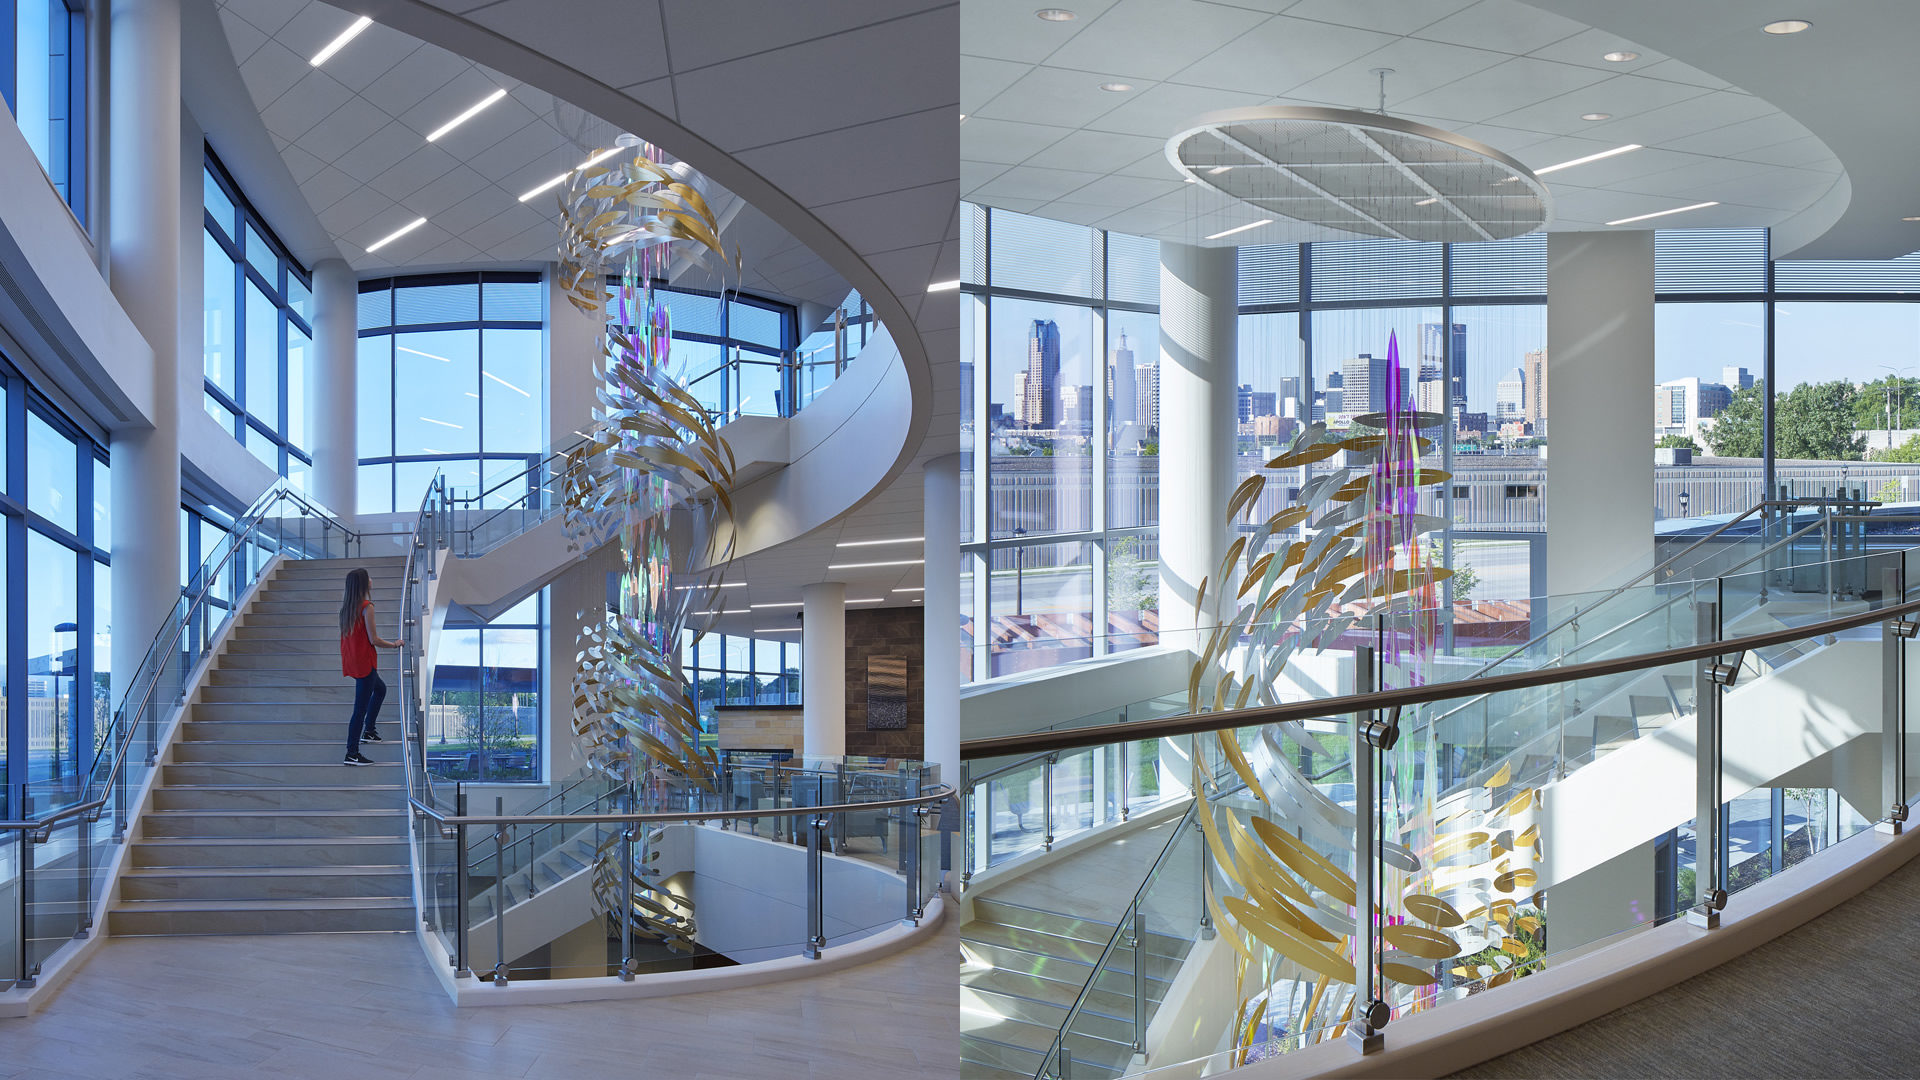 HealthPartners Neuroscience Center Interior View of Grand Staircase Featuring Hanging Sculpture